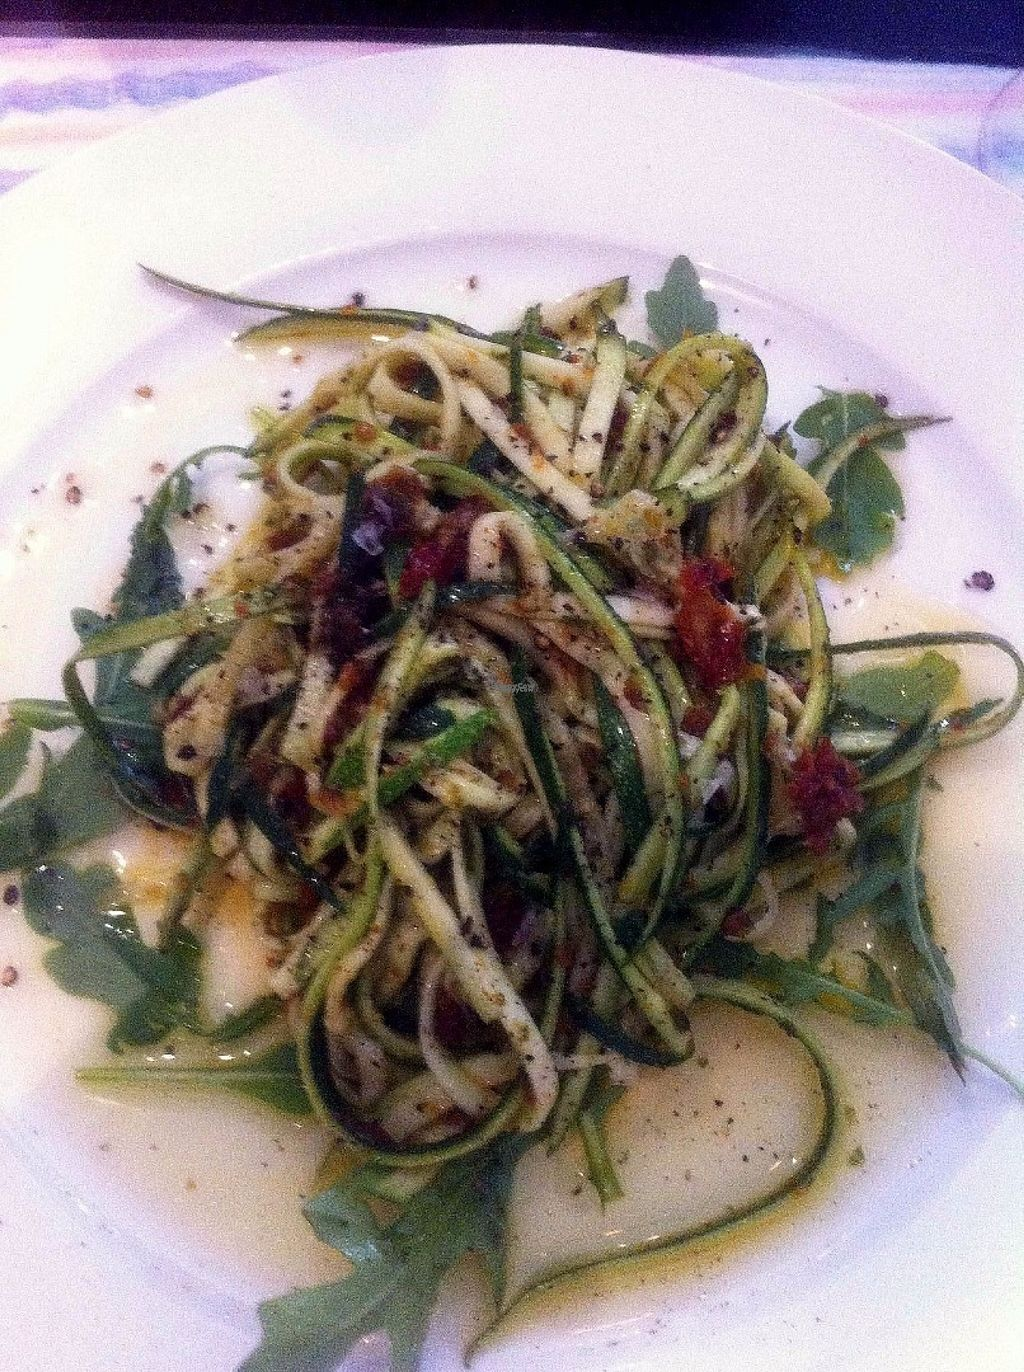 """Photo of Lady Green Bio-Vegetarian Restaurant  by <a href=""""/members/profile/fievos"""">fievos</a> <br/>Zucchini spaggheti with pesto and sundried tomatoes <br/> August 11, 2016  - <a href='/contact/abuse/image/36048/167622'>Report</a>"""